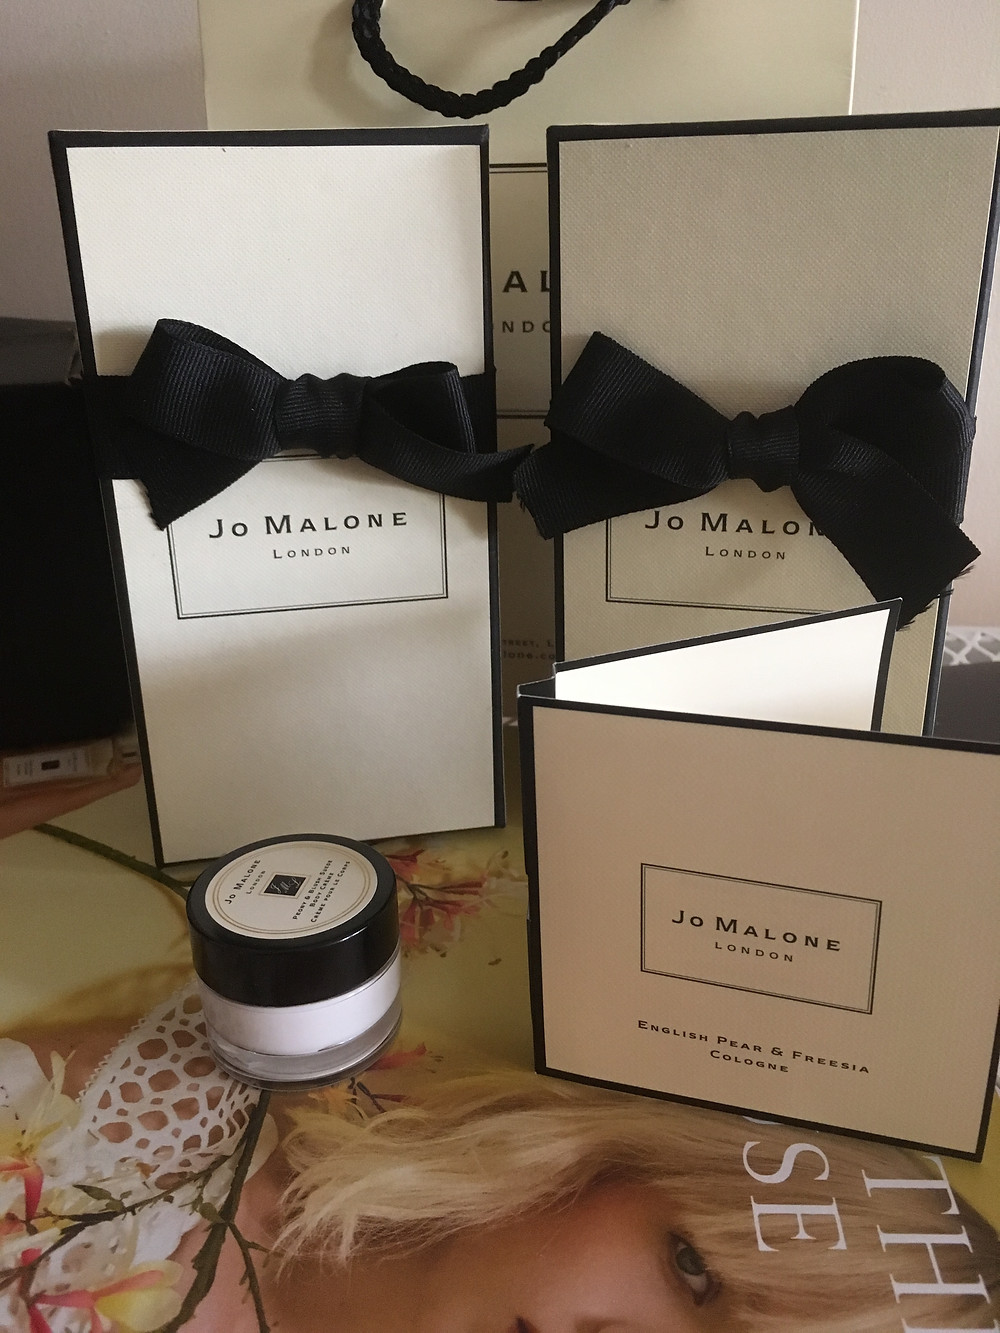 Jo Malone London samples and gifts.